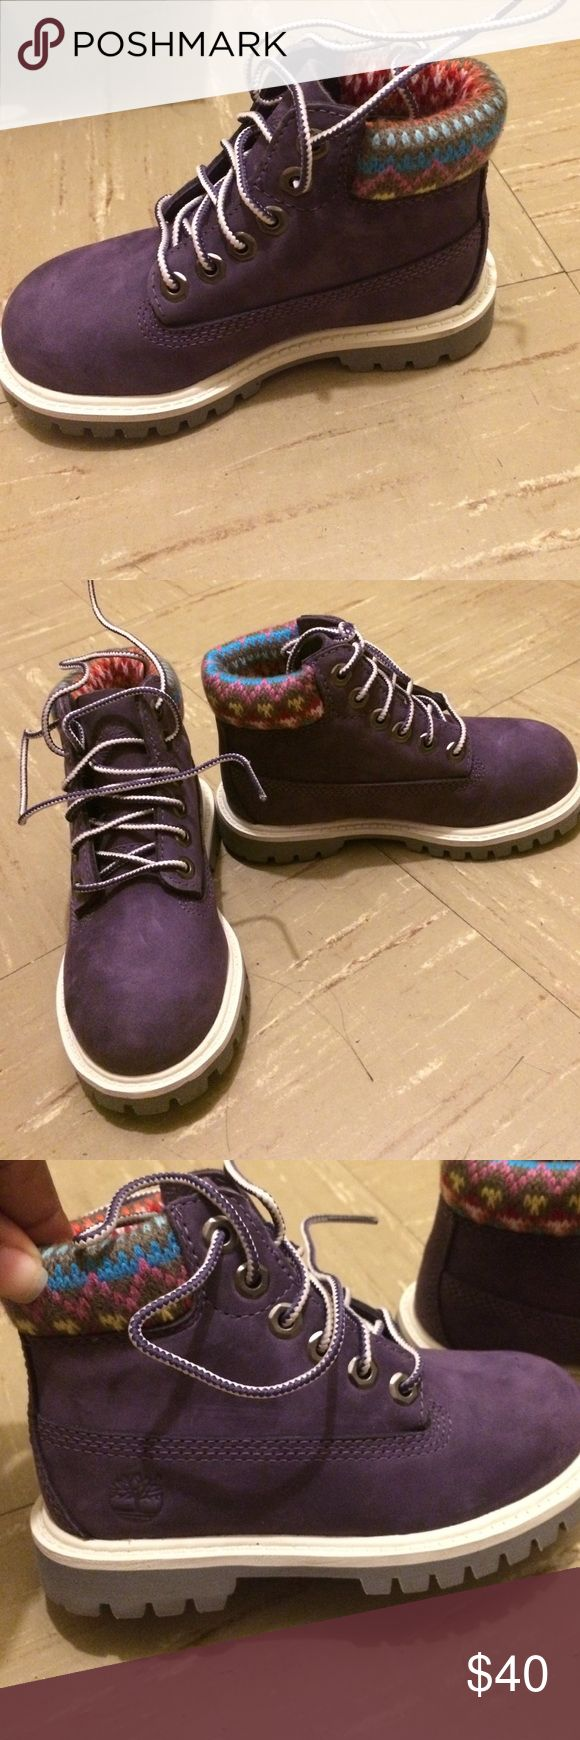 Brand new timberland purple boots Brand new timberland boots for little girls Timberland Shoes Boots